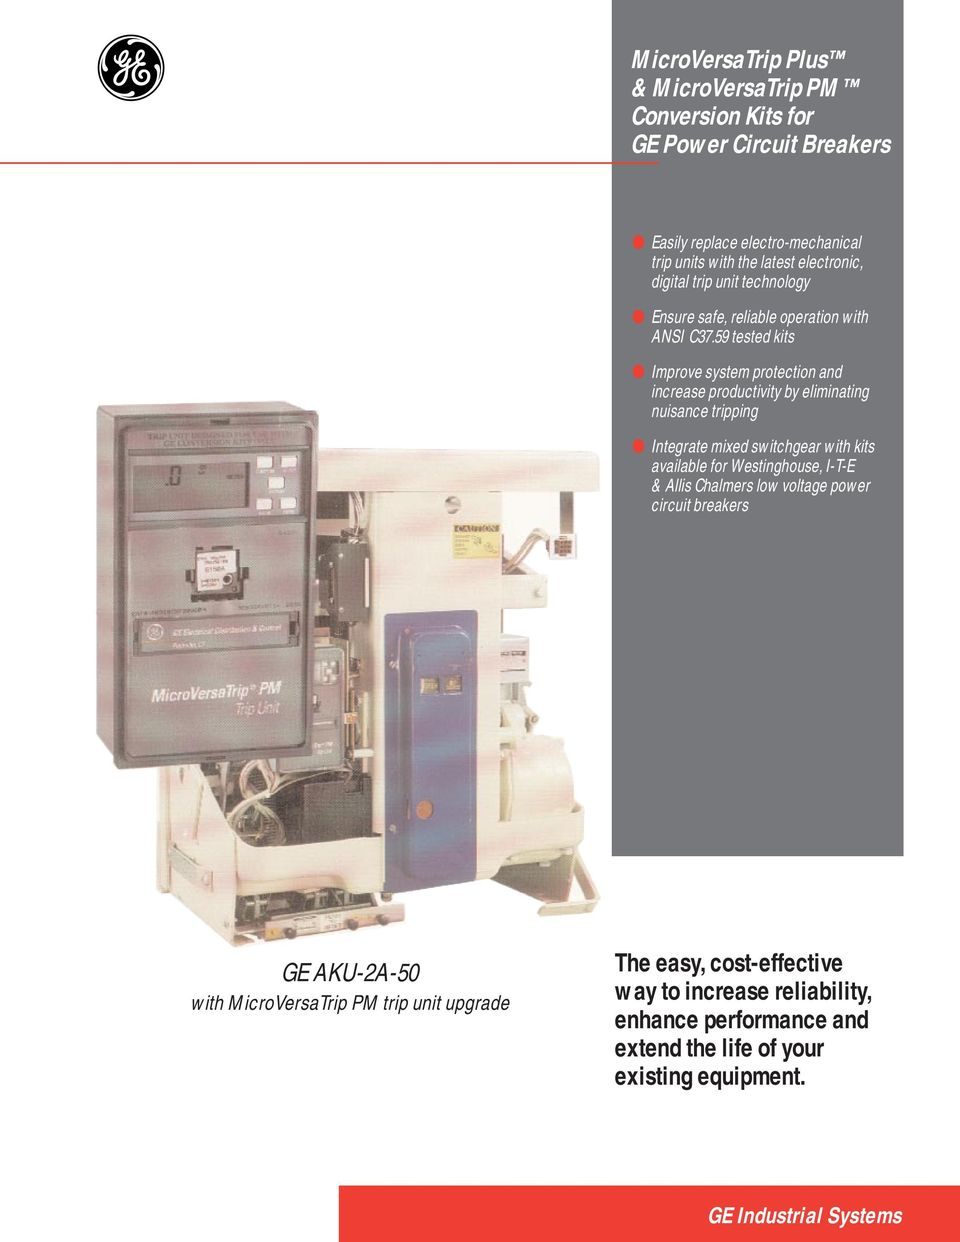 Microversatrip Plus Pm Conversion Kits For Ge Power Tripping Unit Of Circuit Breaker 59 Tested Improve System Protection And Increase Productivity By Eliminating Nuisance Integrate Mixed Switchgear